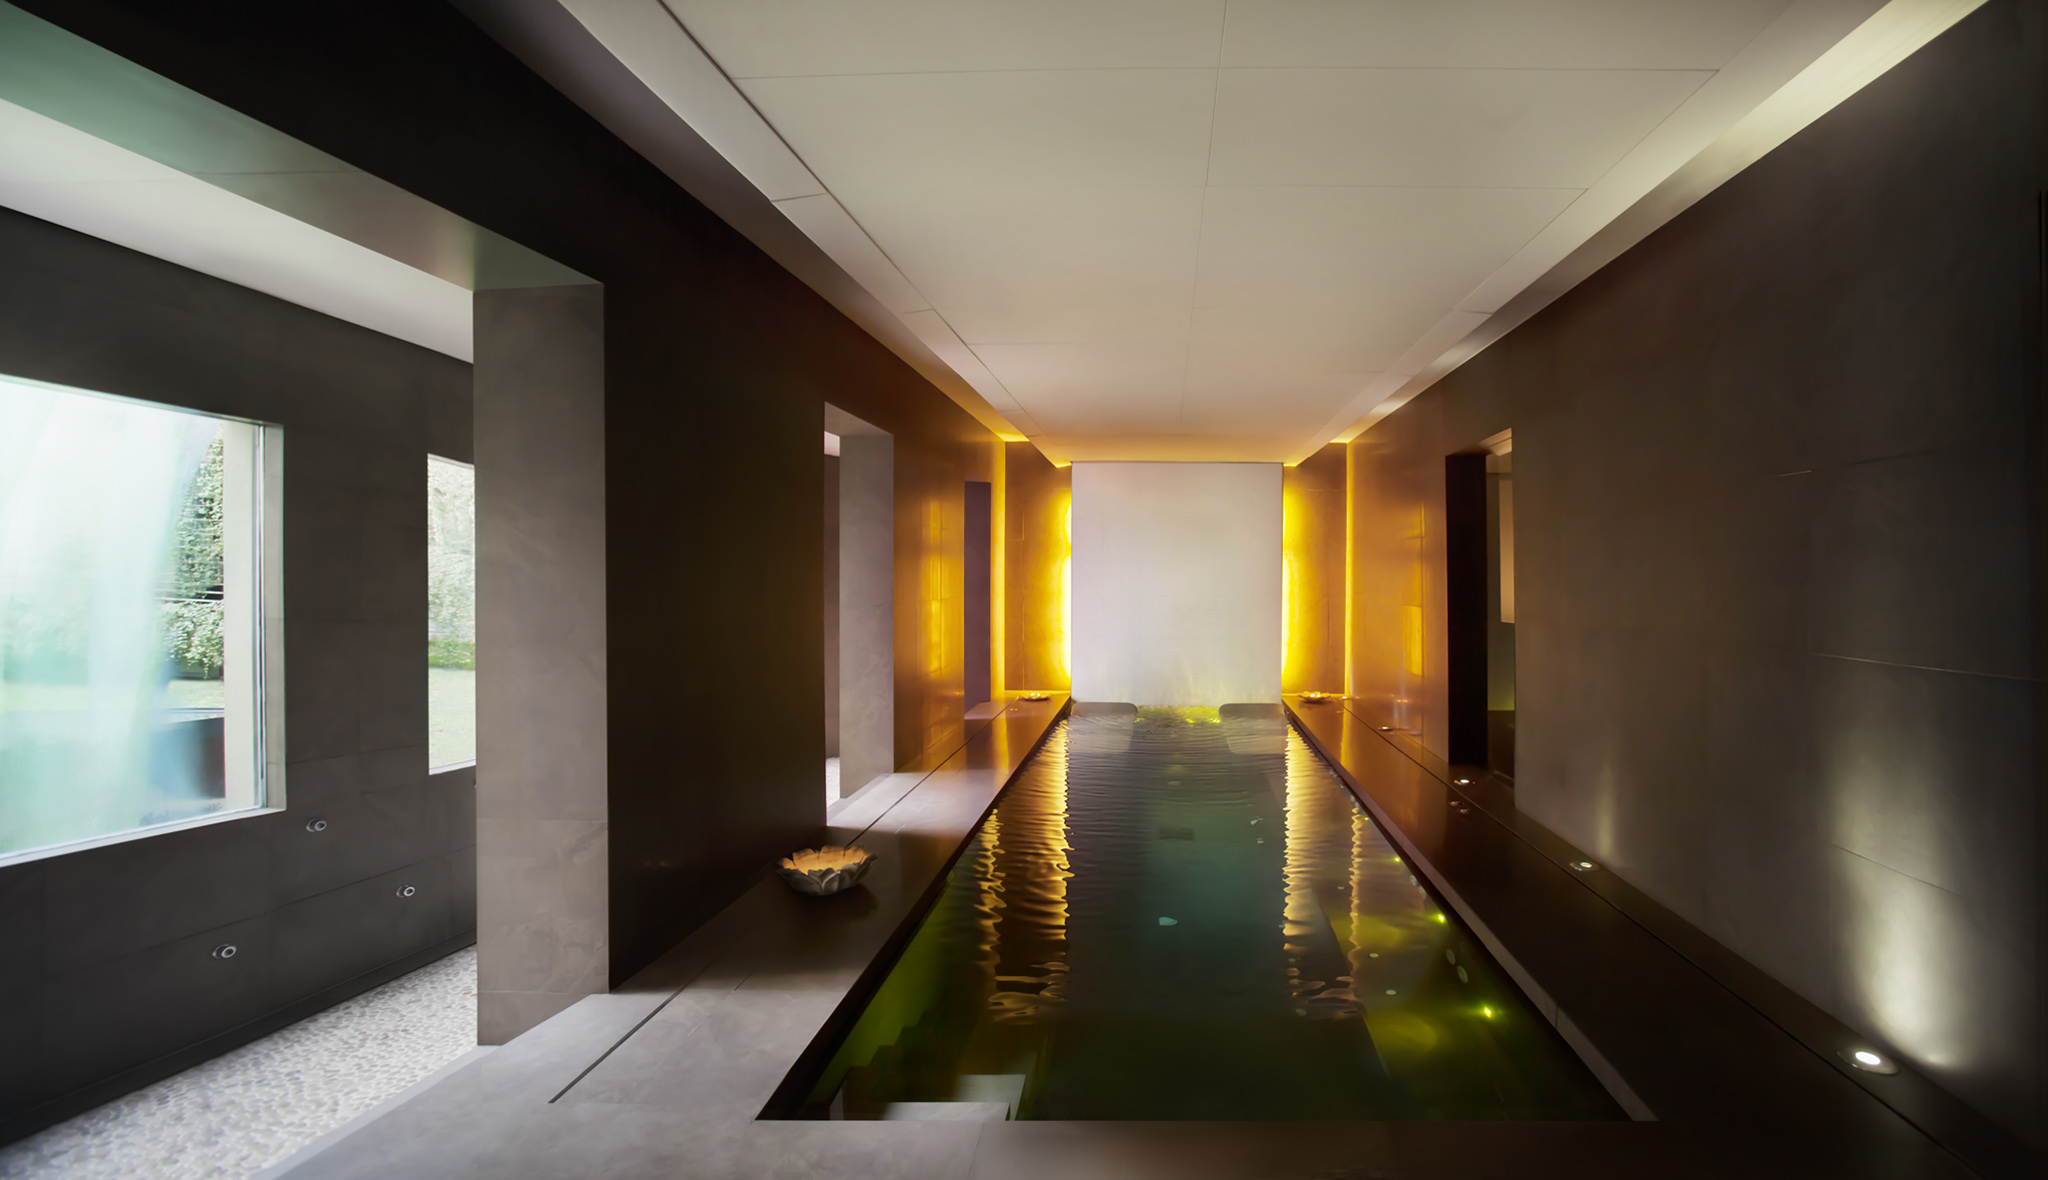 5-star Hotel Omm Takes Luxury To A Whole Other Level With Design, Gastronomy And Atmosphere